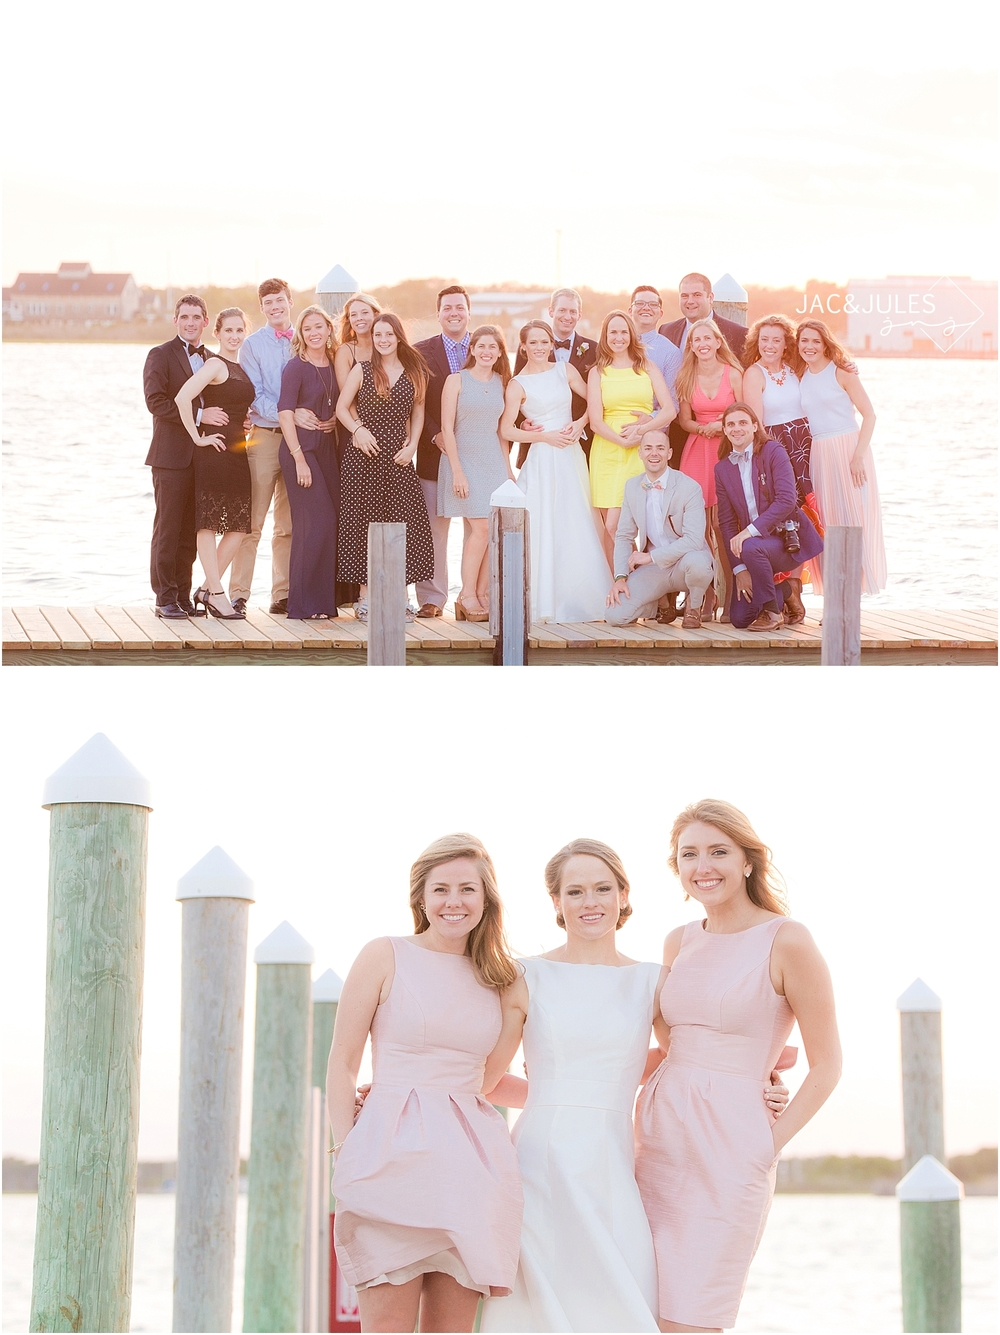 jacnjules photograph a wedding on the dock at sunset at mantoloking yacht club in nj